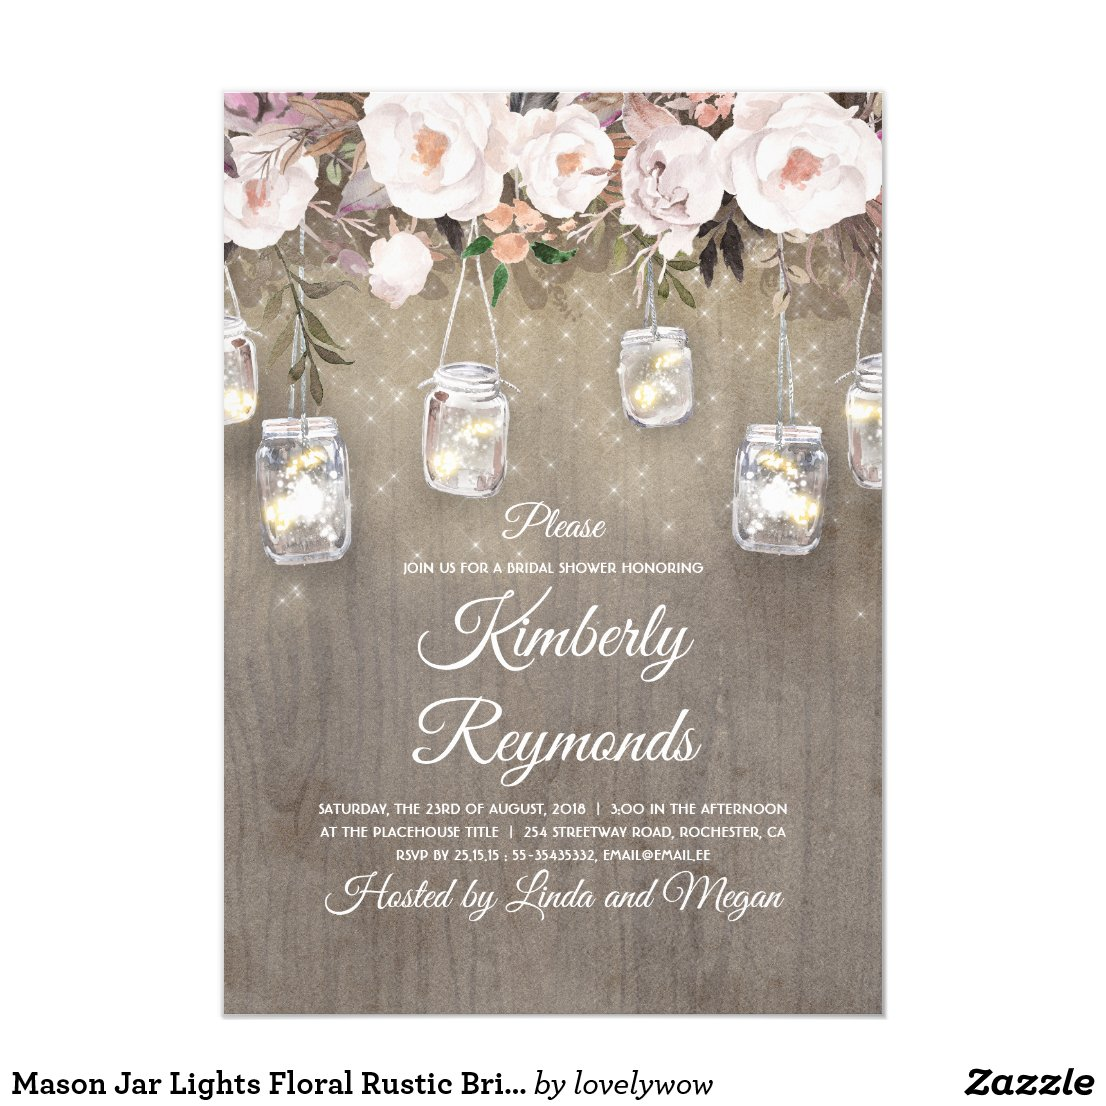 Mason Jar Lights Floral Rustic Bridal Shower Invitation